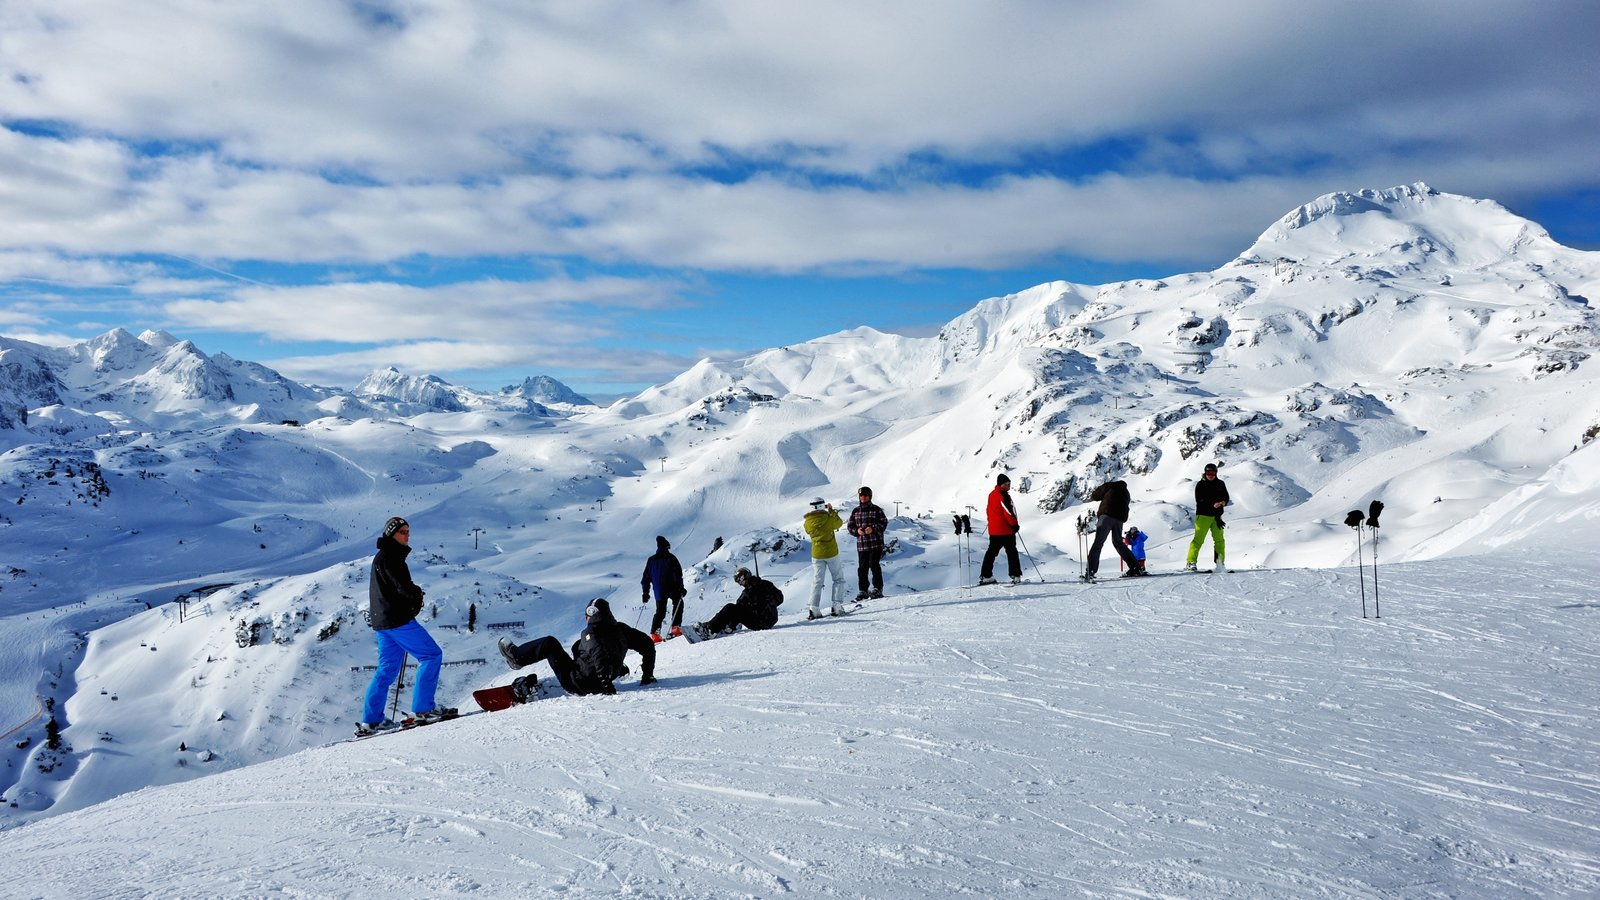 Obertauern featuring mountains and snow as well as a large group of people